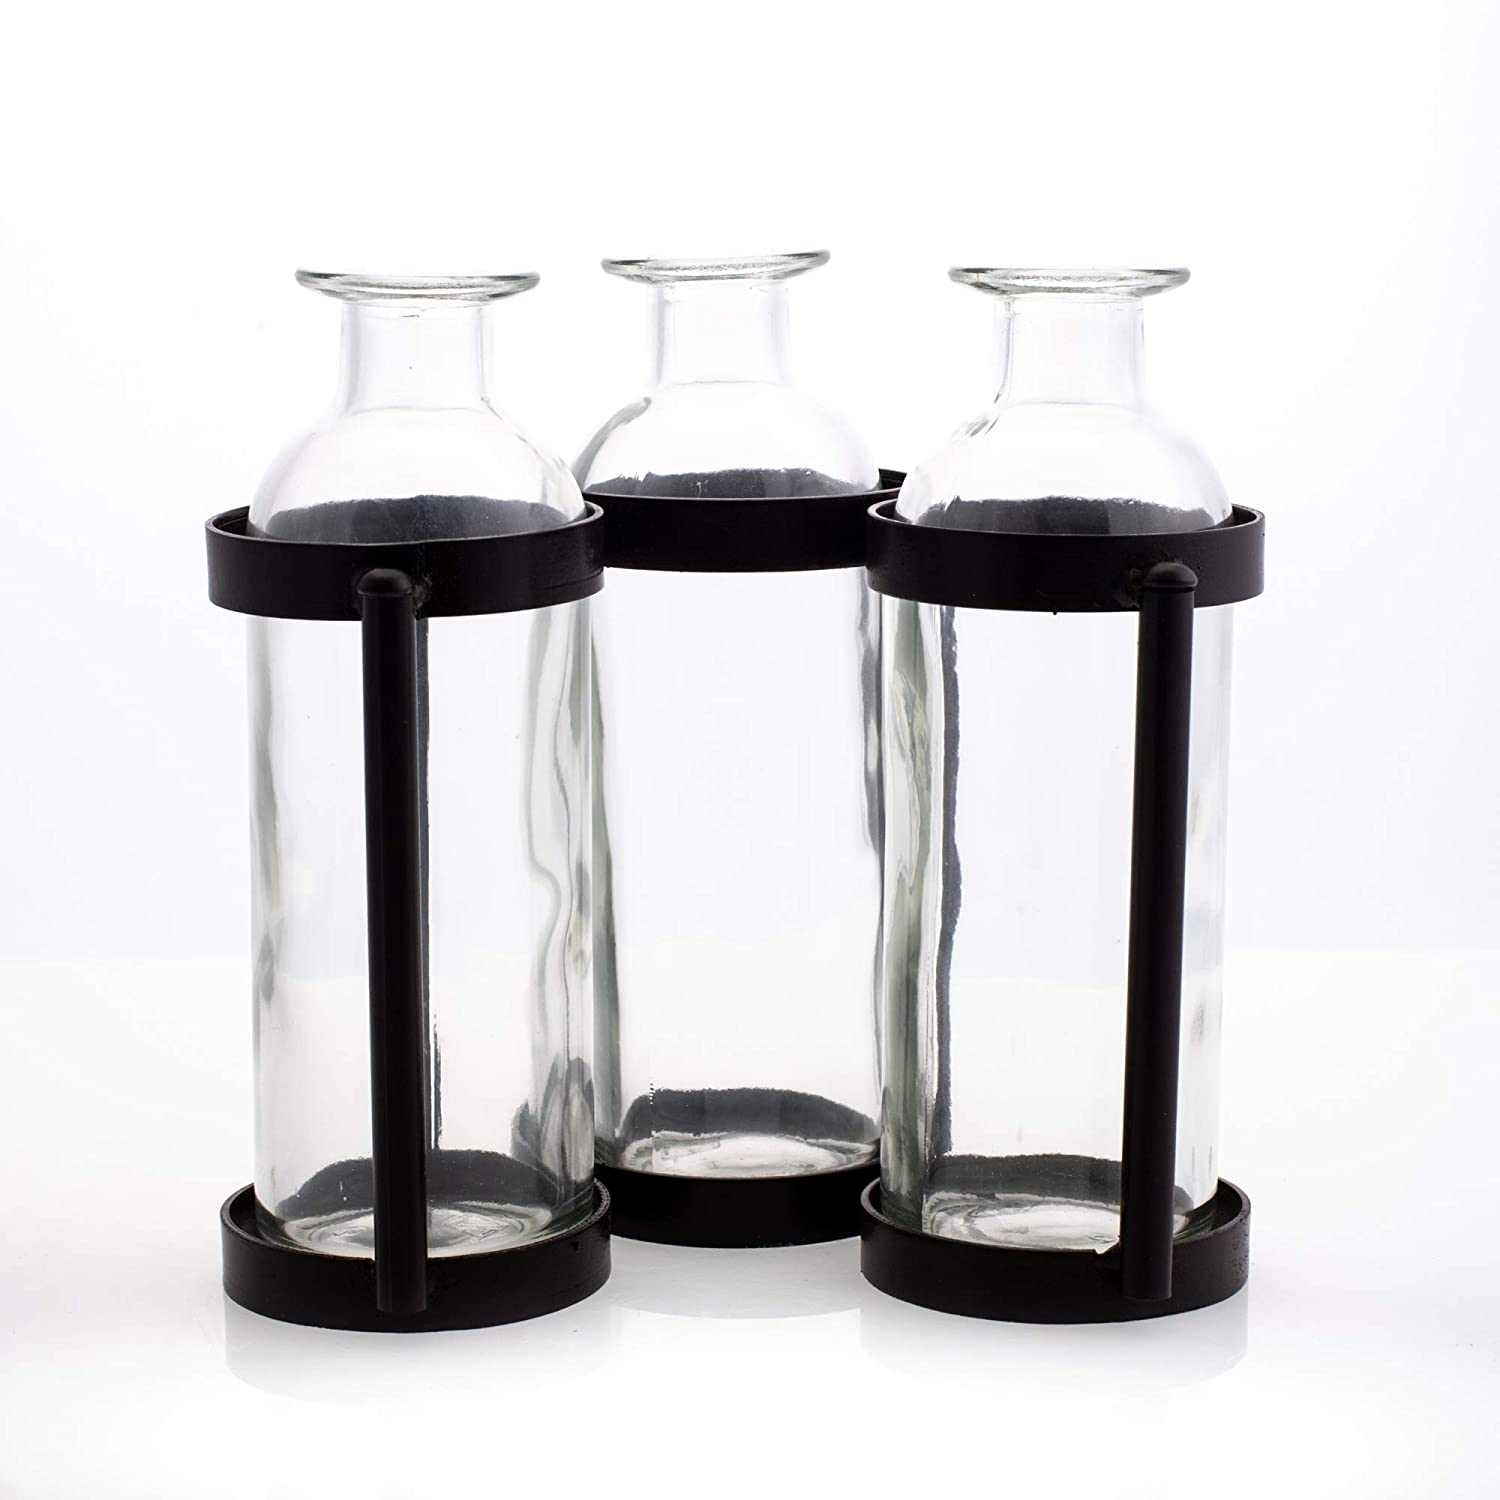 Sullivans Metal and Glass Vase Stand 6.5 Tall x 10 Long G6505